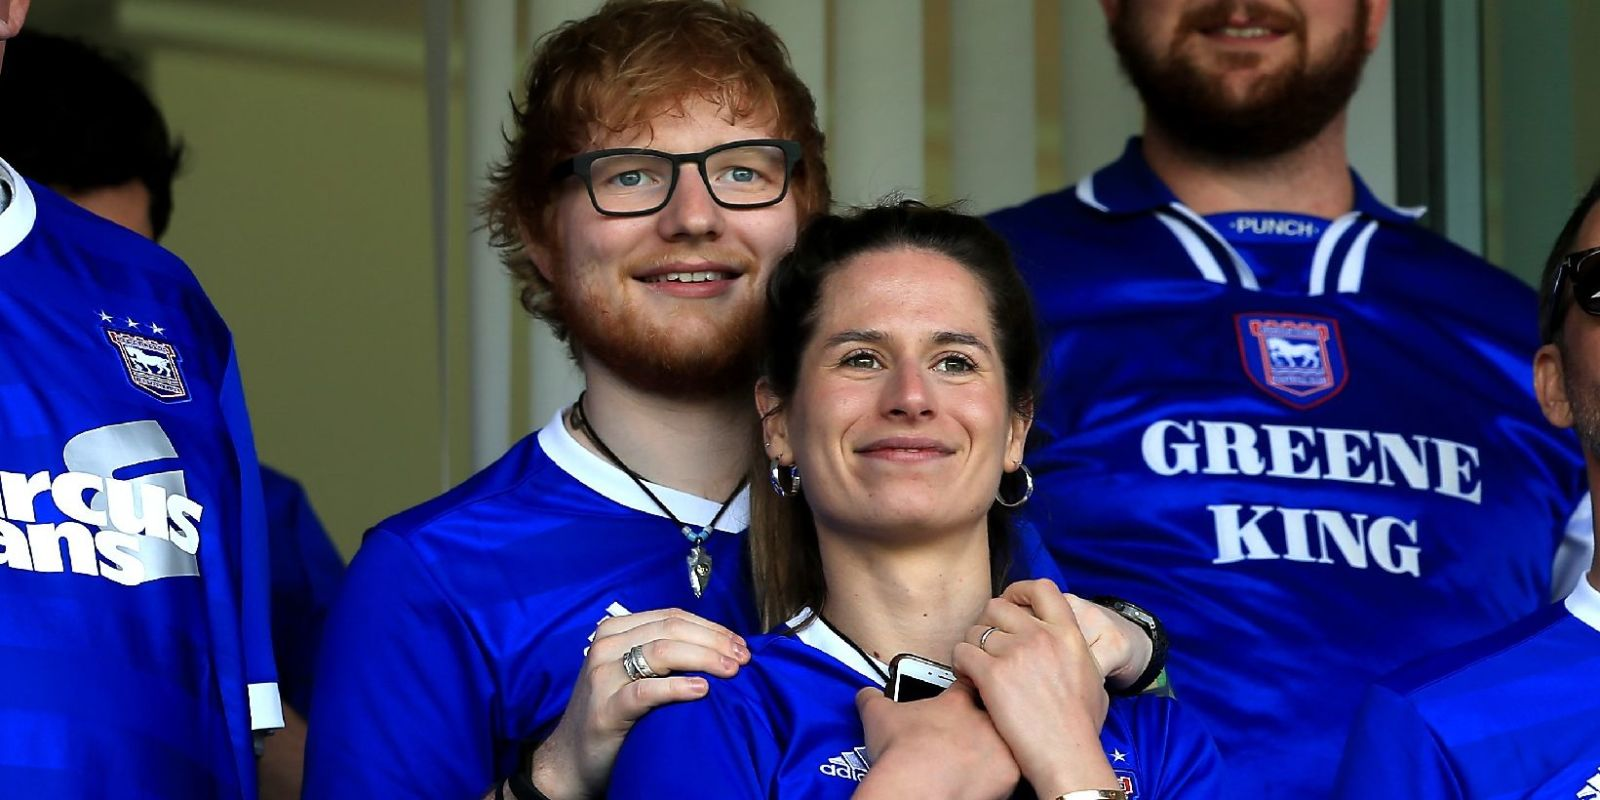 Ed Sheeran and his fiance Cherry Seaborn at a game wearing a blue jersey